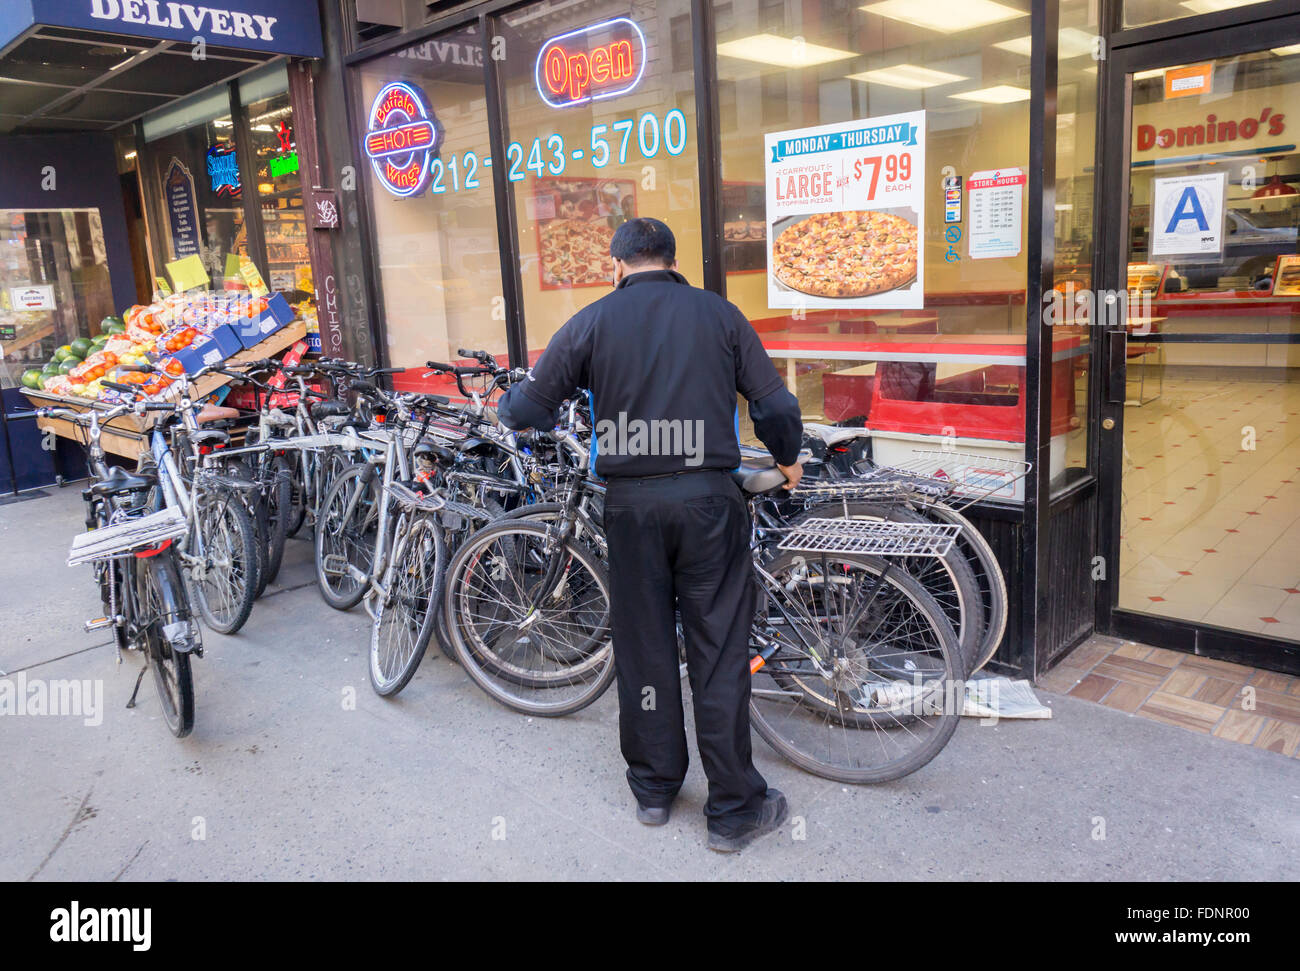 A worker at a Domino's Pizza in New York arranges their collection of delivery bicycles outside of the store - Stock Image